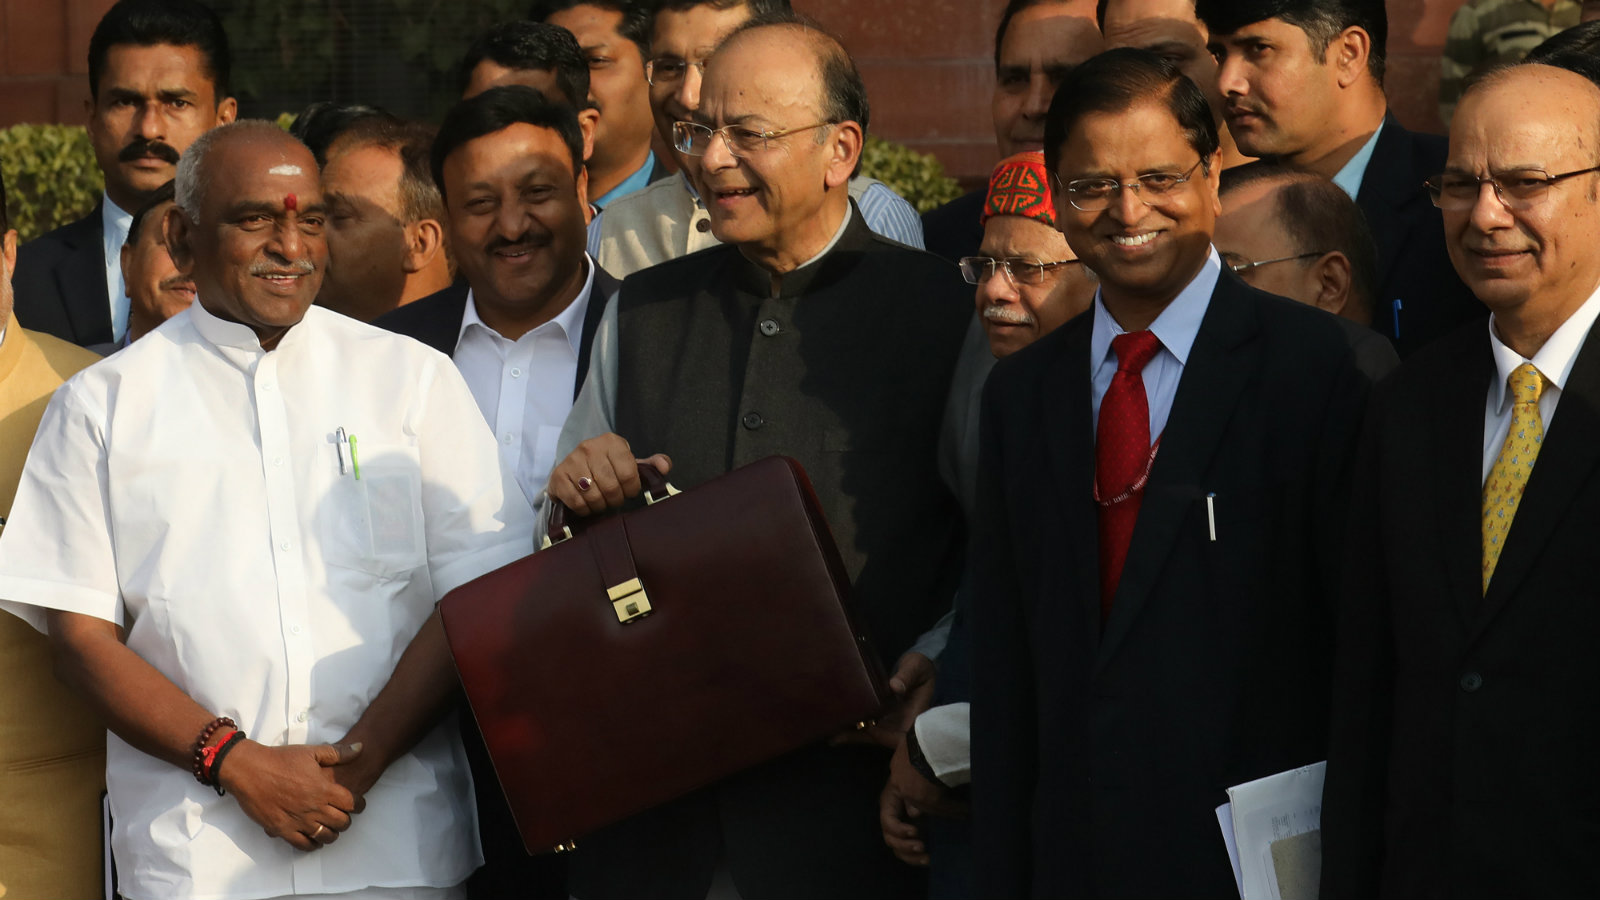 Indian Finance Minister Arun Jaitley (C) holds his briefcase with Union Budget documents as he leaves the Ministry of Finance for the Parliament House to present the 2018-19 General Budget in New Delhi, India, 01 February 2018. Jaitley will be presenting the general budget for the country at the Indian parliament. India's financial year runs from April to March. EPA-